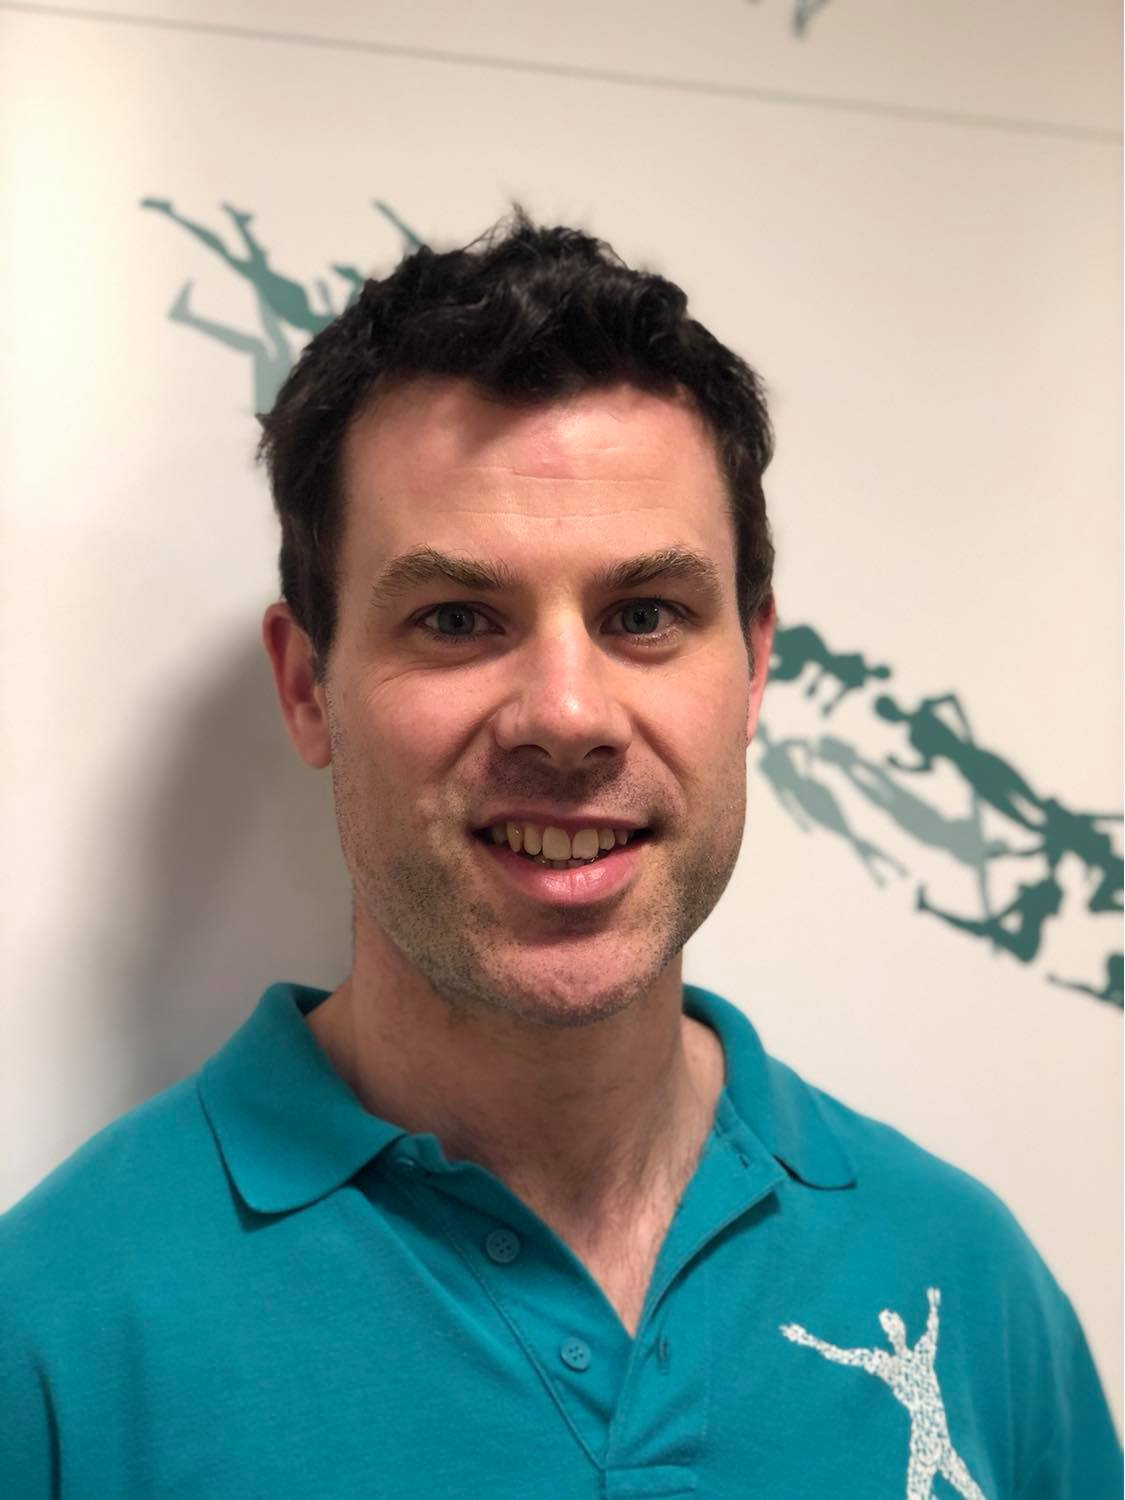 Phil Evans leading physiotherapist at Urban Body Physiotherapy Clinic in Solihull